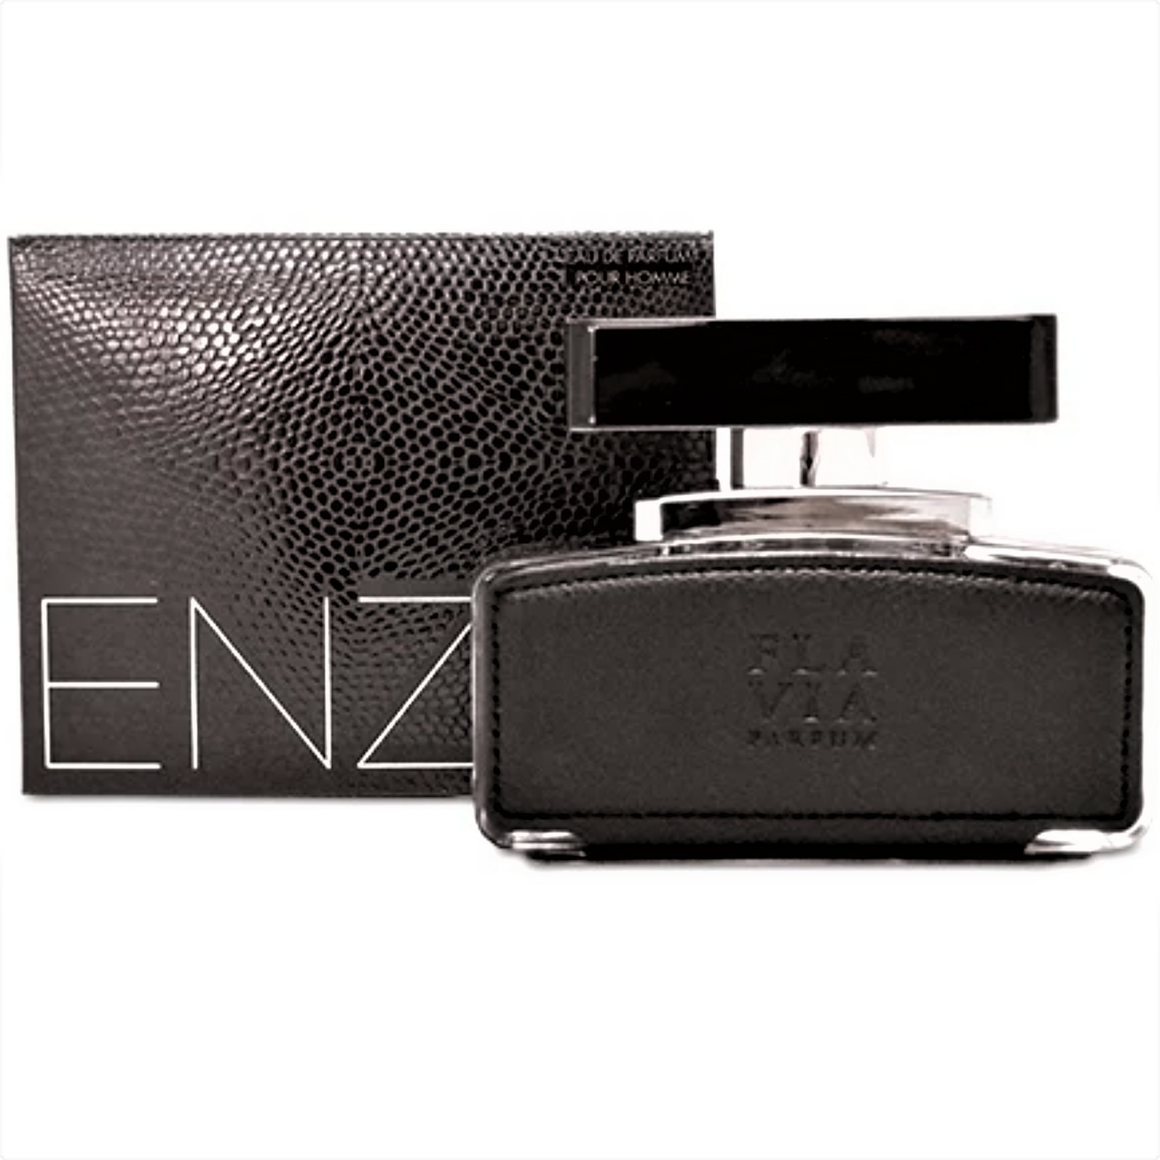 ENZO POUR HOMME EDT: MADE IN ITALY - Bowerbird on Argyle